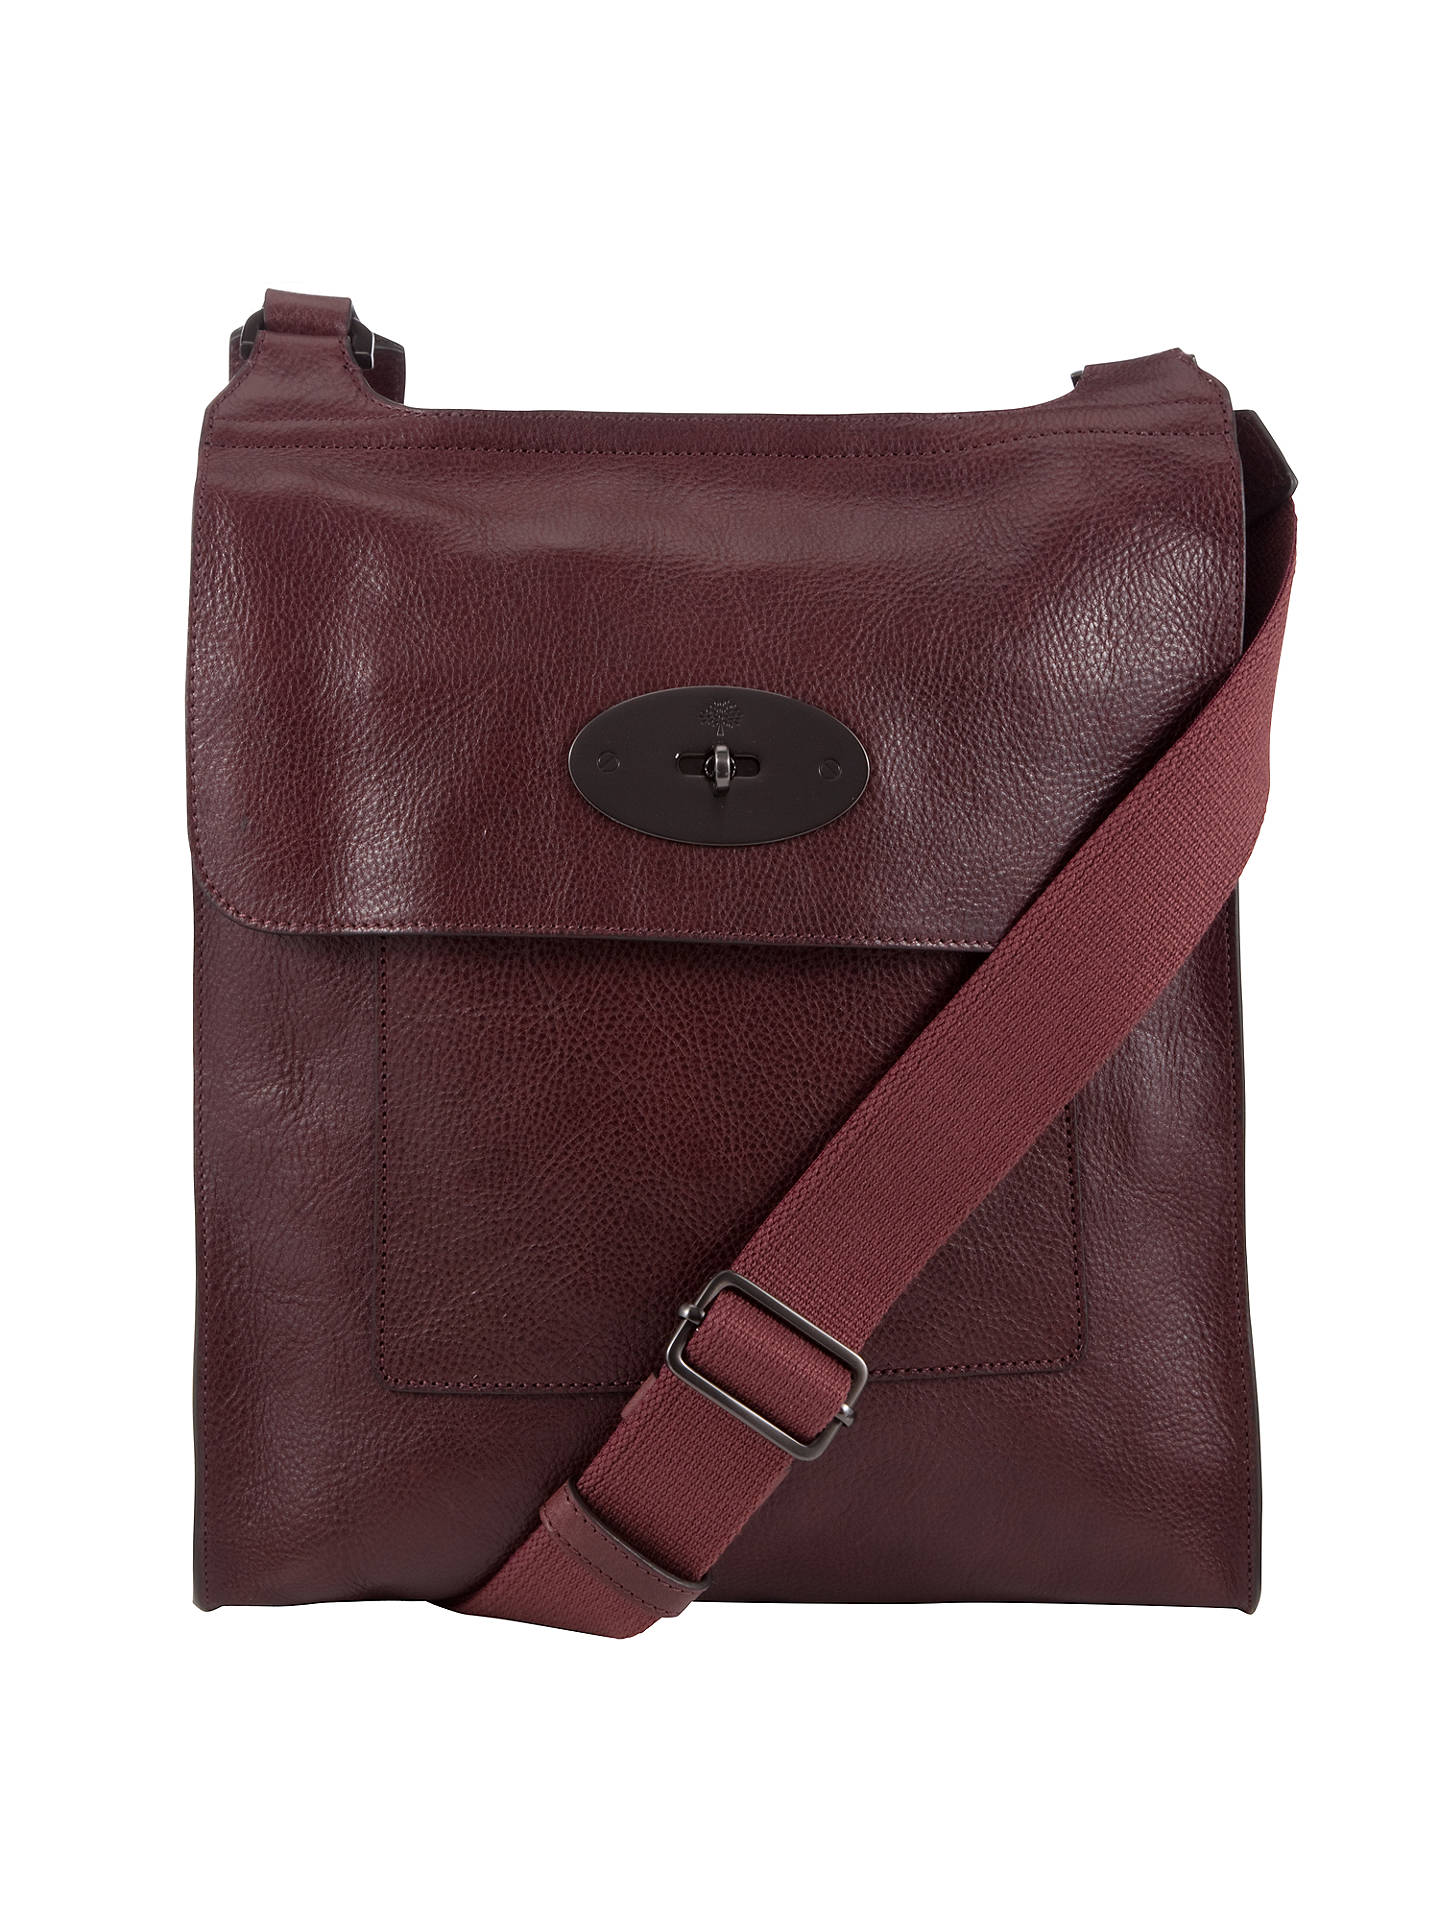 97094804f2 Buy Mulberry Antony Leather Messenger Across Body Bag